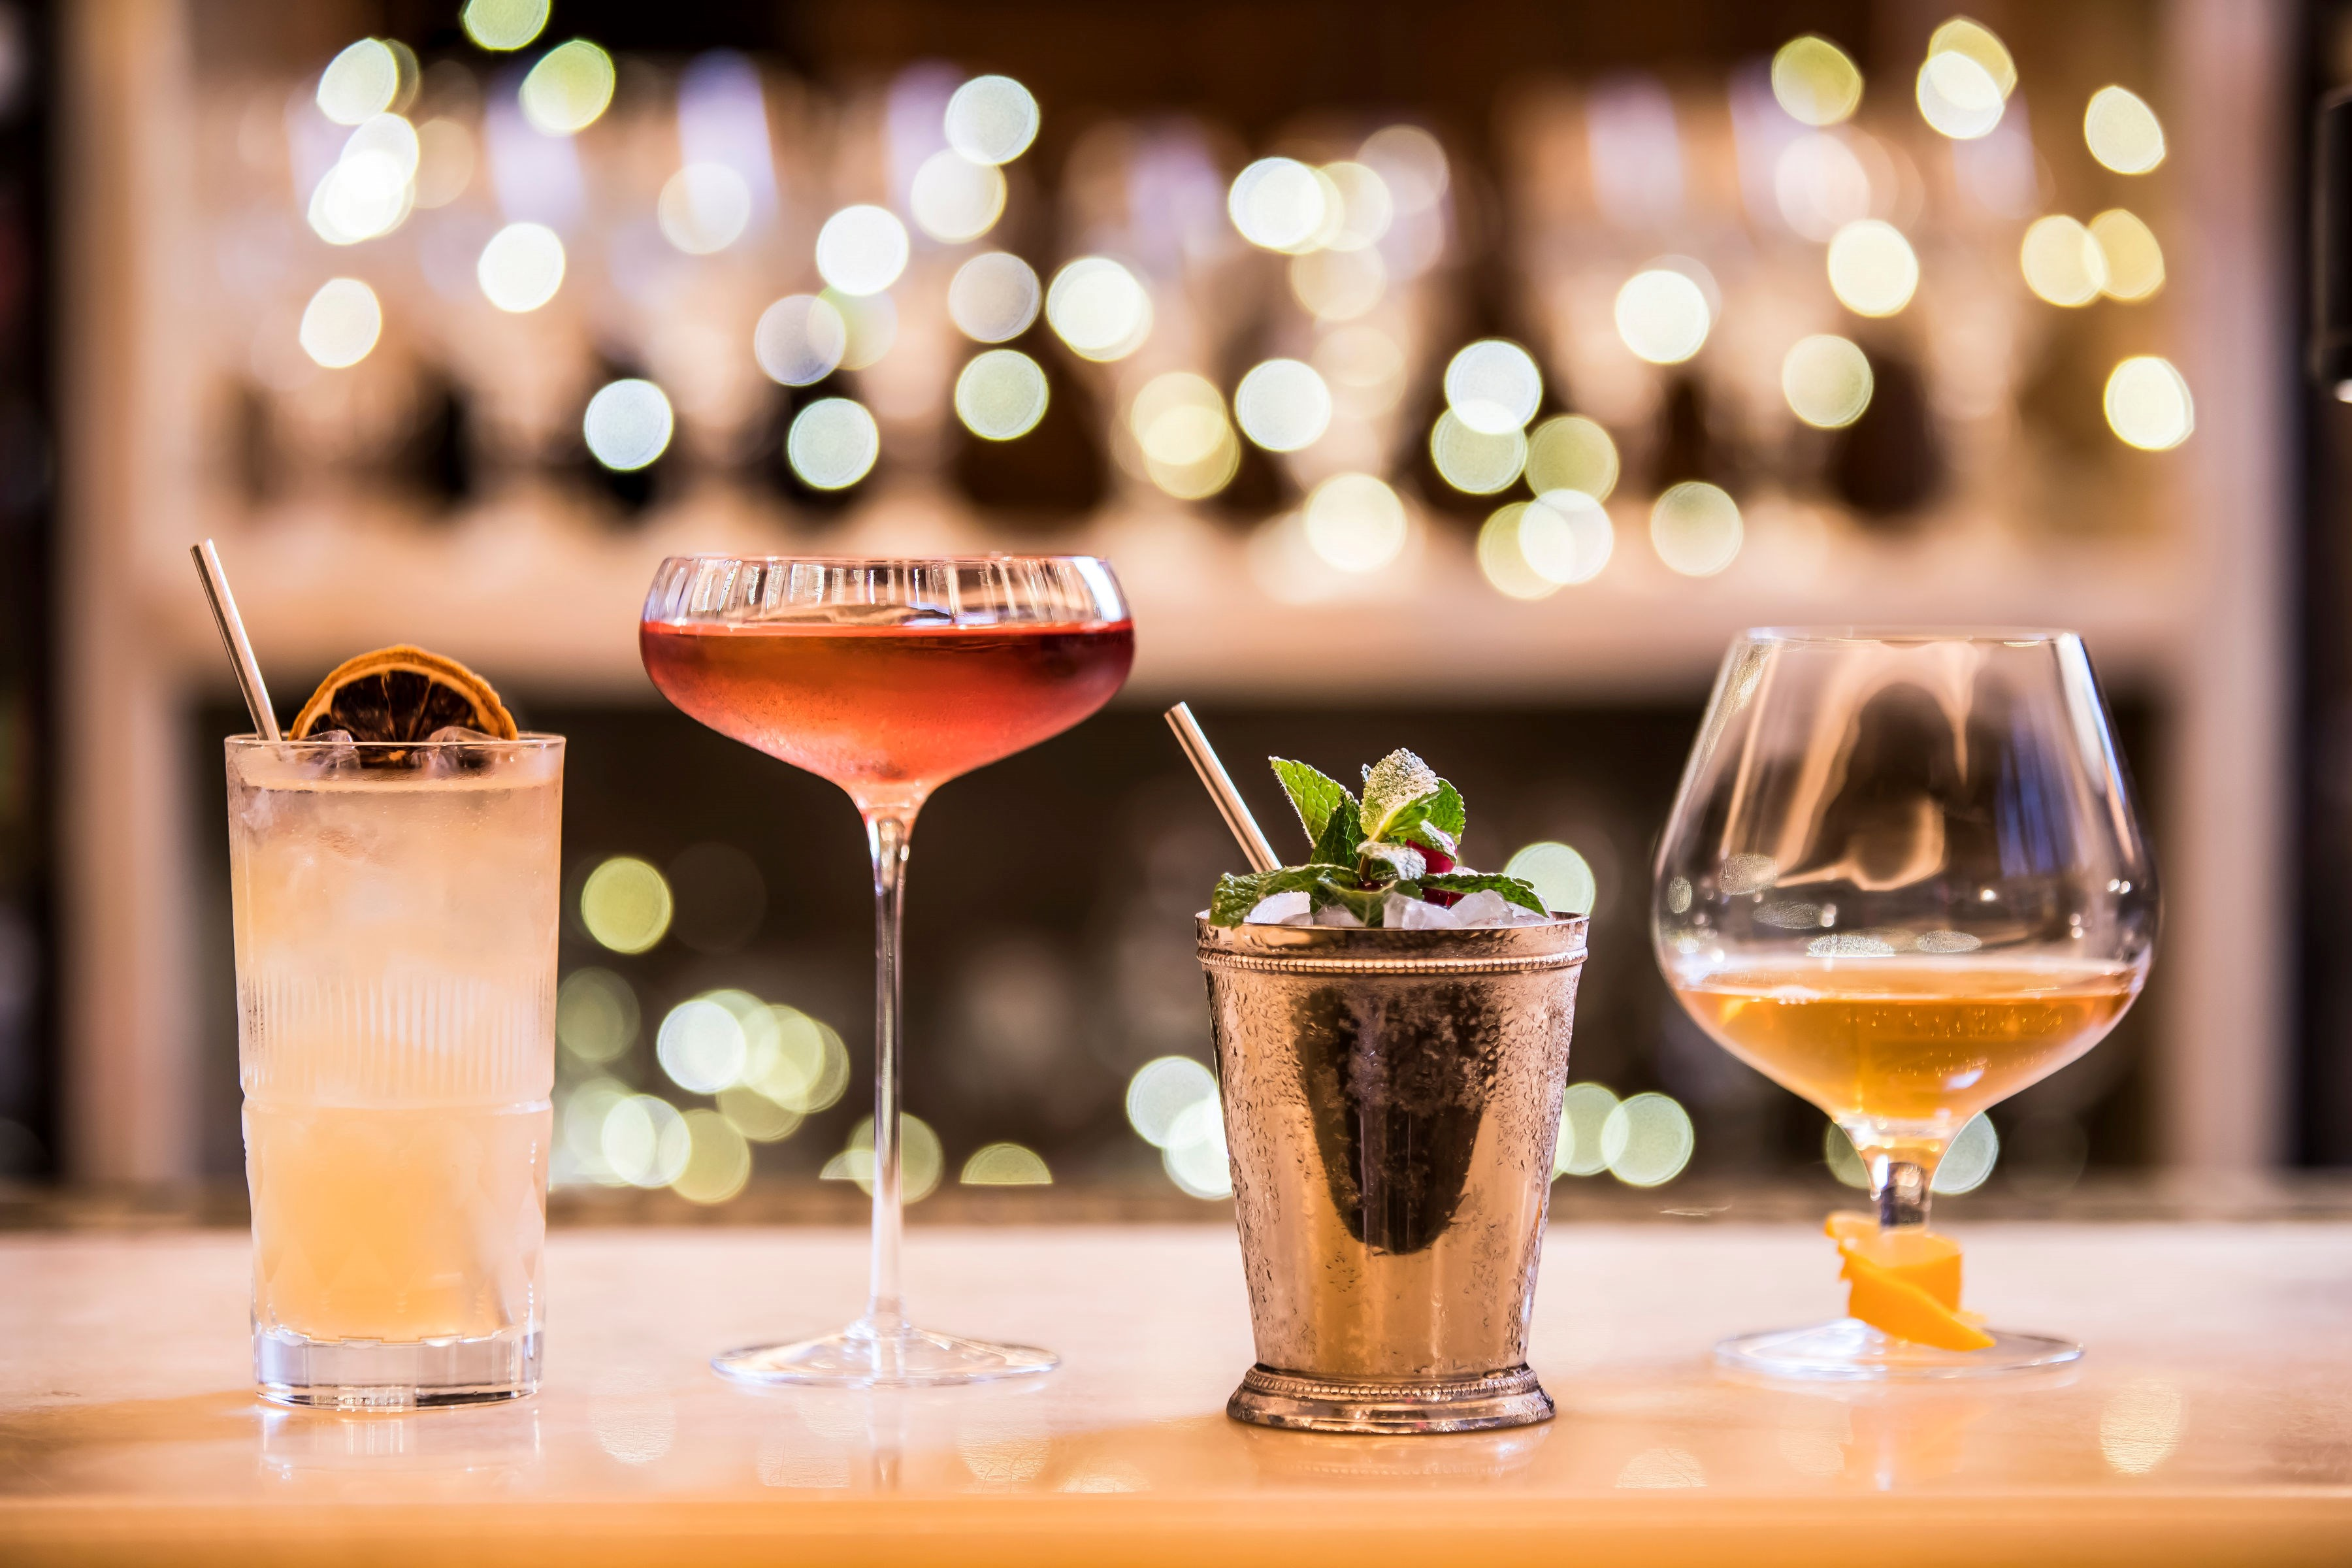 34 mayfair christmas cocktail line up by debbie bragg 2